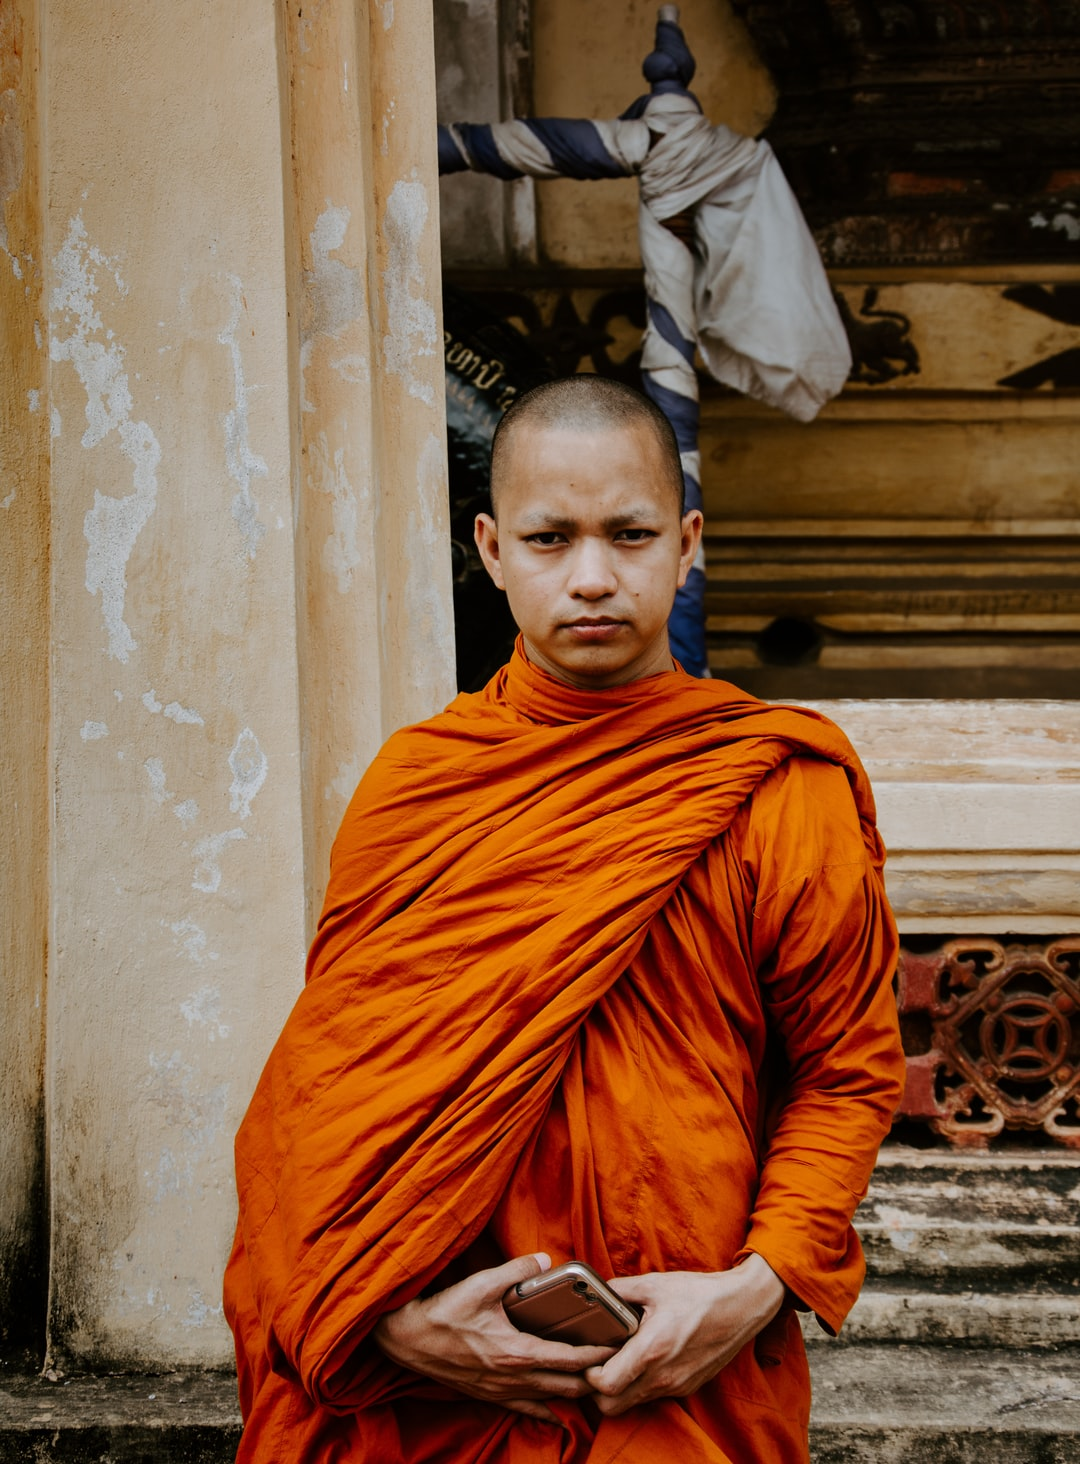 I met this  young monk from Nepal at a an old wat (temple) in Vientiane, Laos. We took some photos together and he also let me took a few portrait shots.